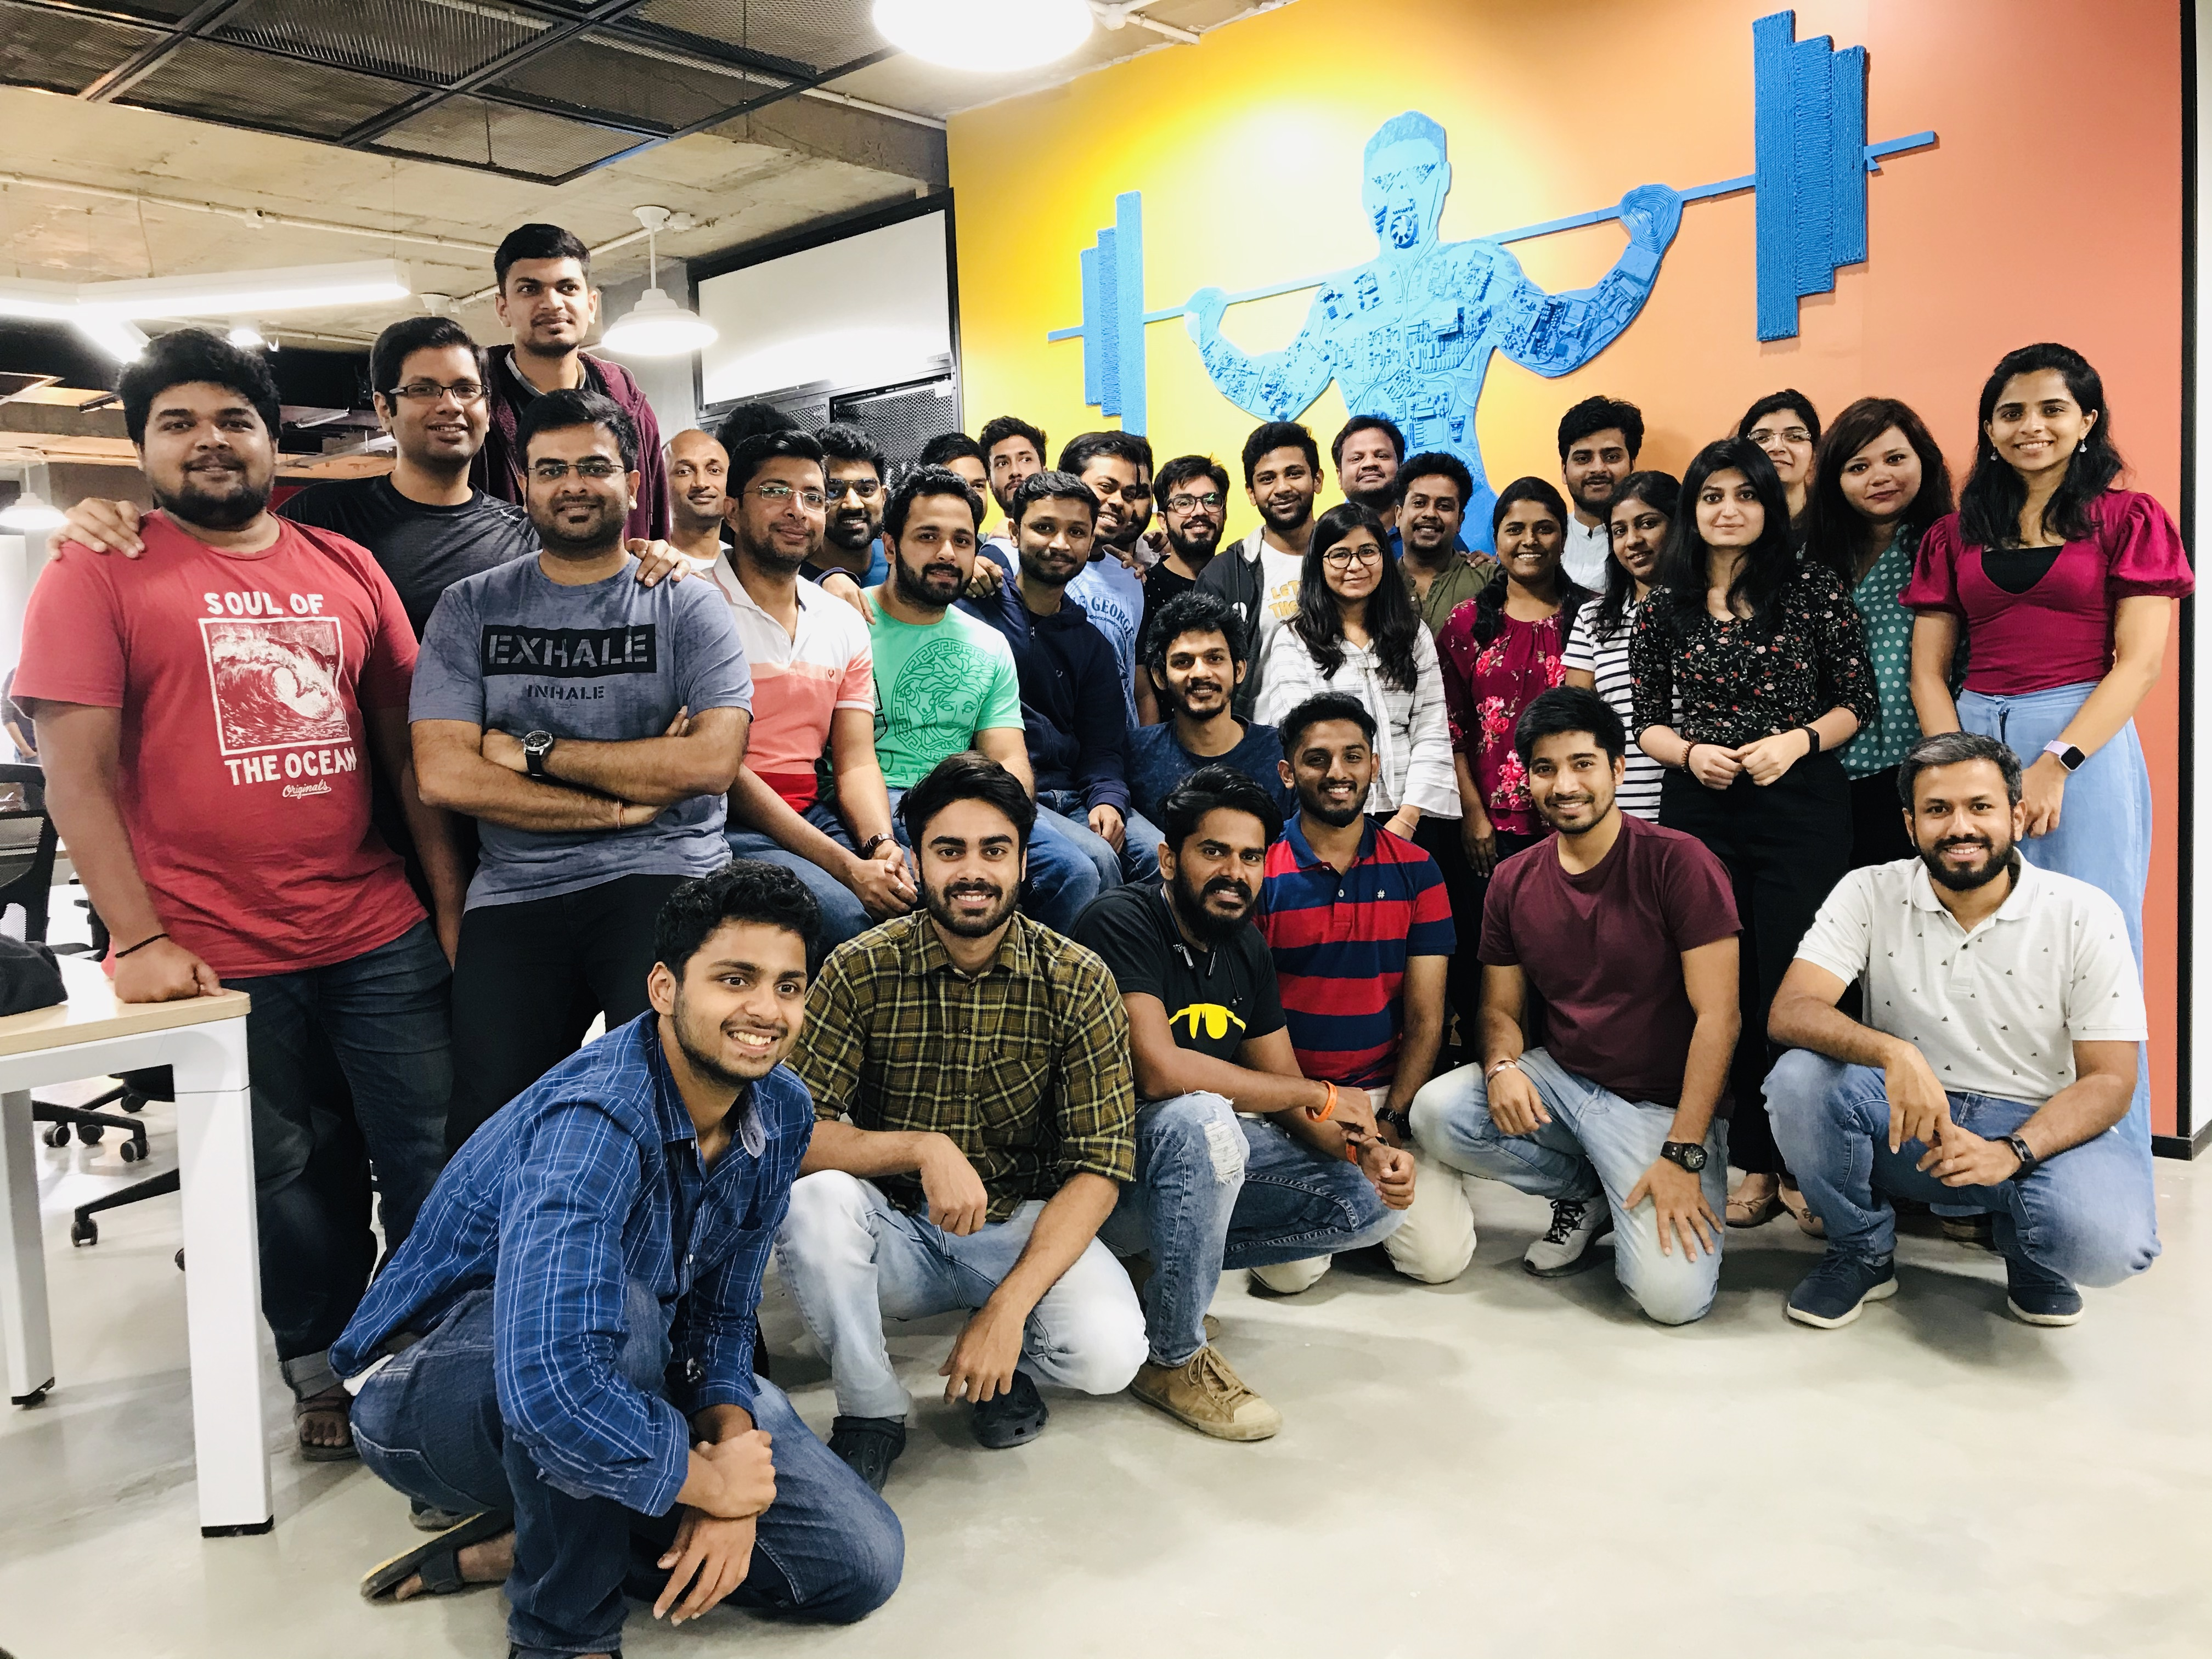 team photo of indian health and fitness app startup cure.fit